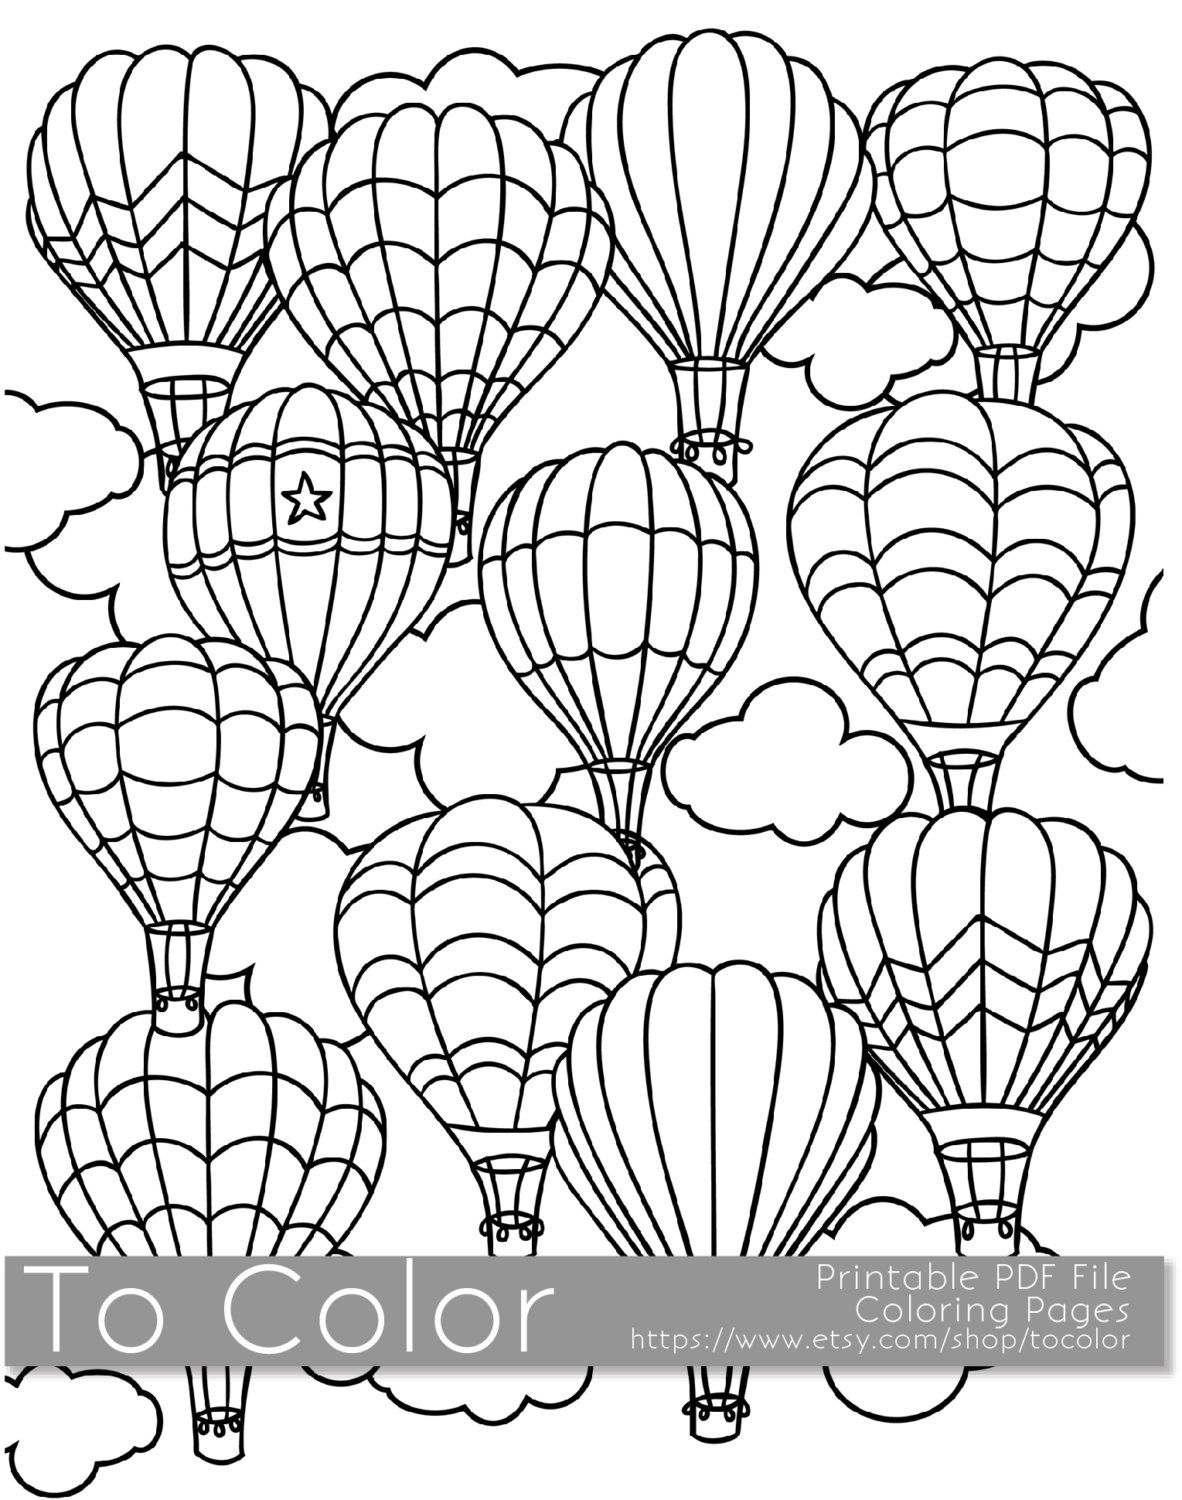 printable hot air balloon coloring page for adults pdf jpg instant download coloring book coloring sheet grown ups digital stamp by tocolor on etsy